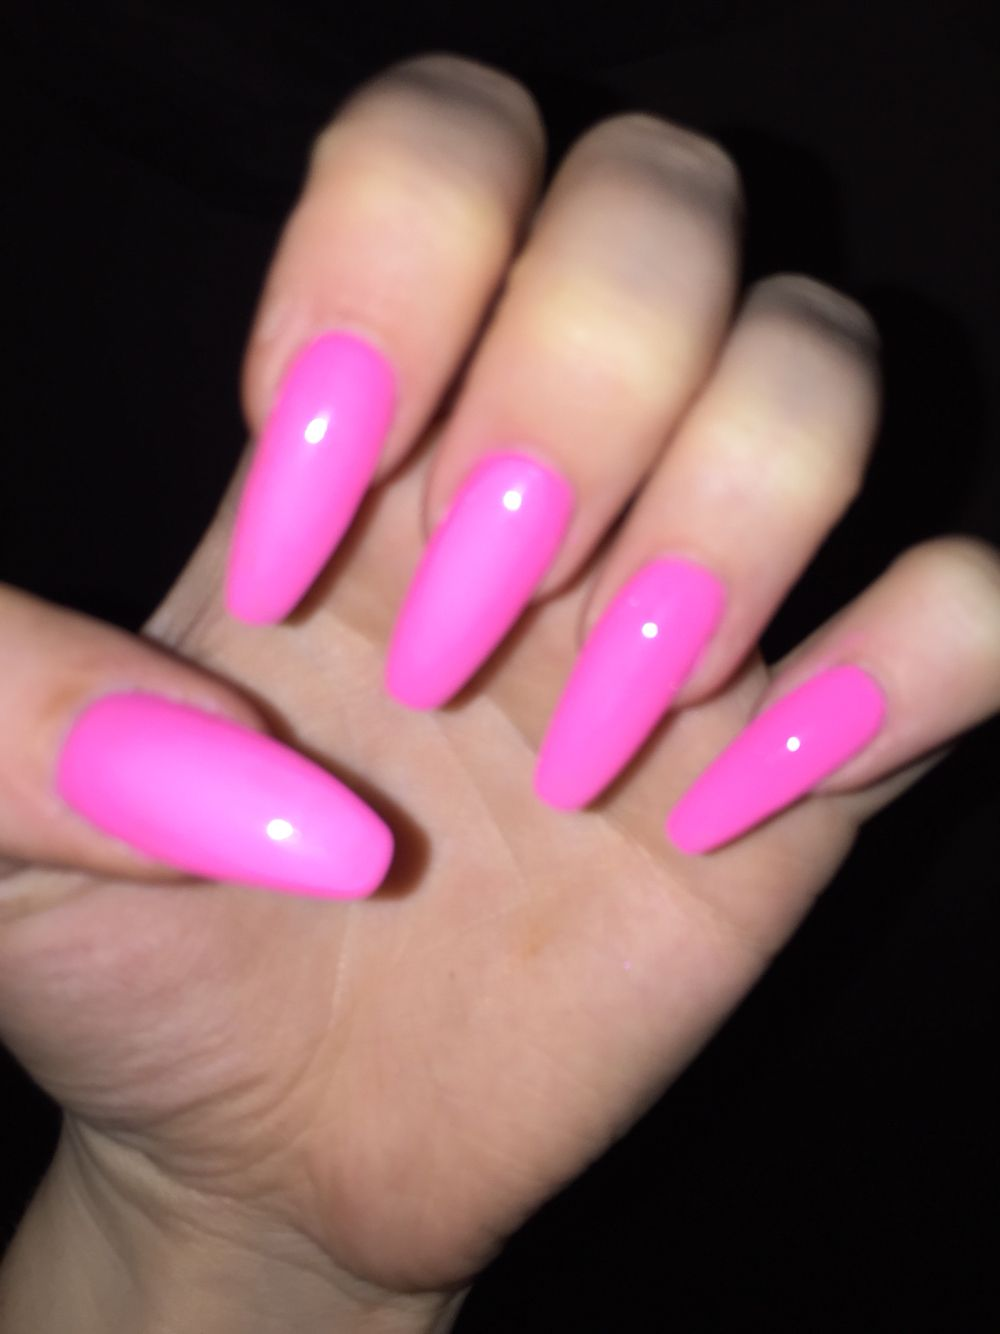 Neon pink acrylic coffin nails | Nails | Pinterest | Nails ...